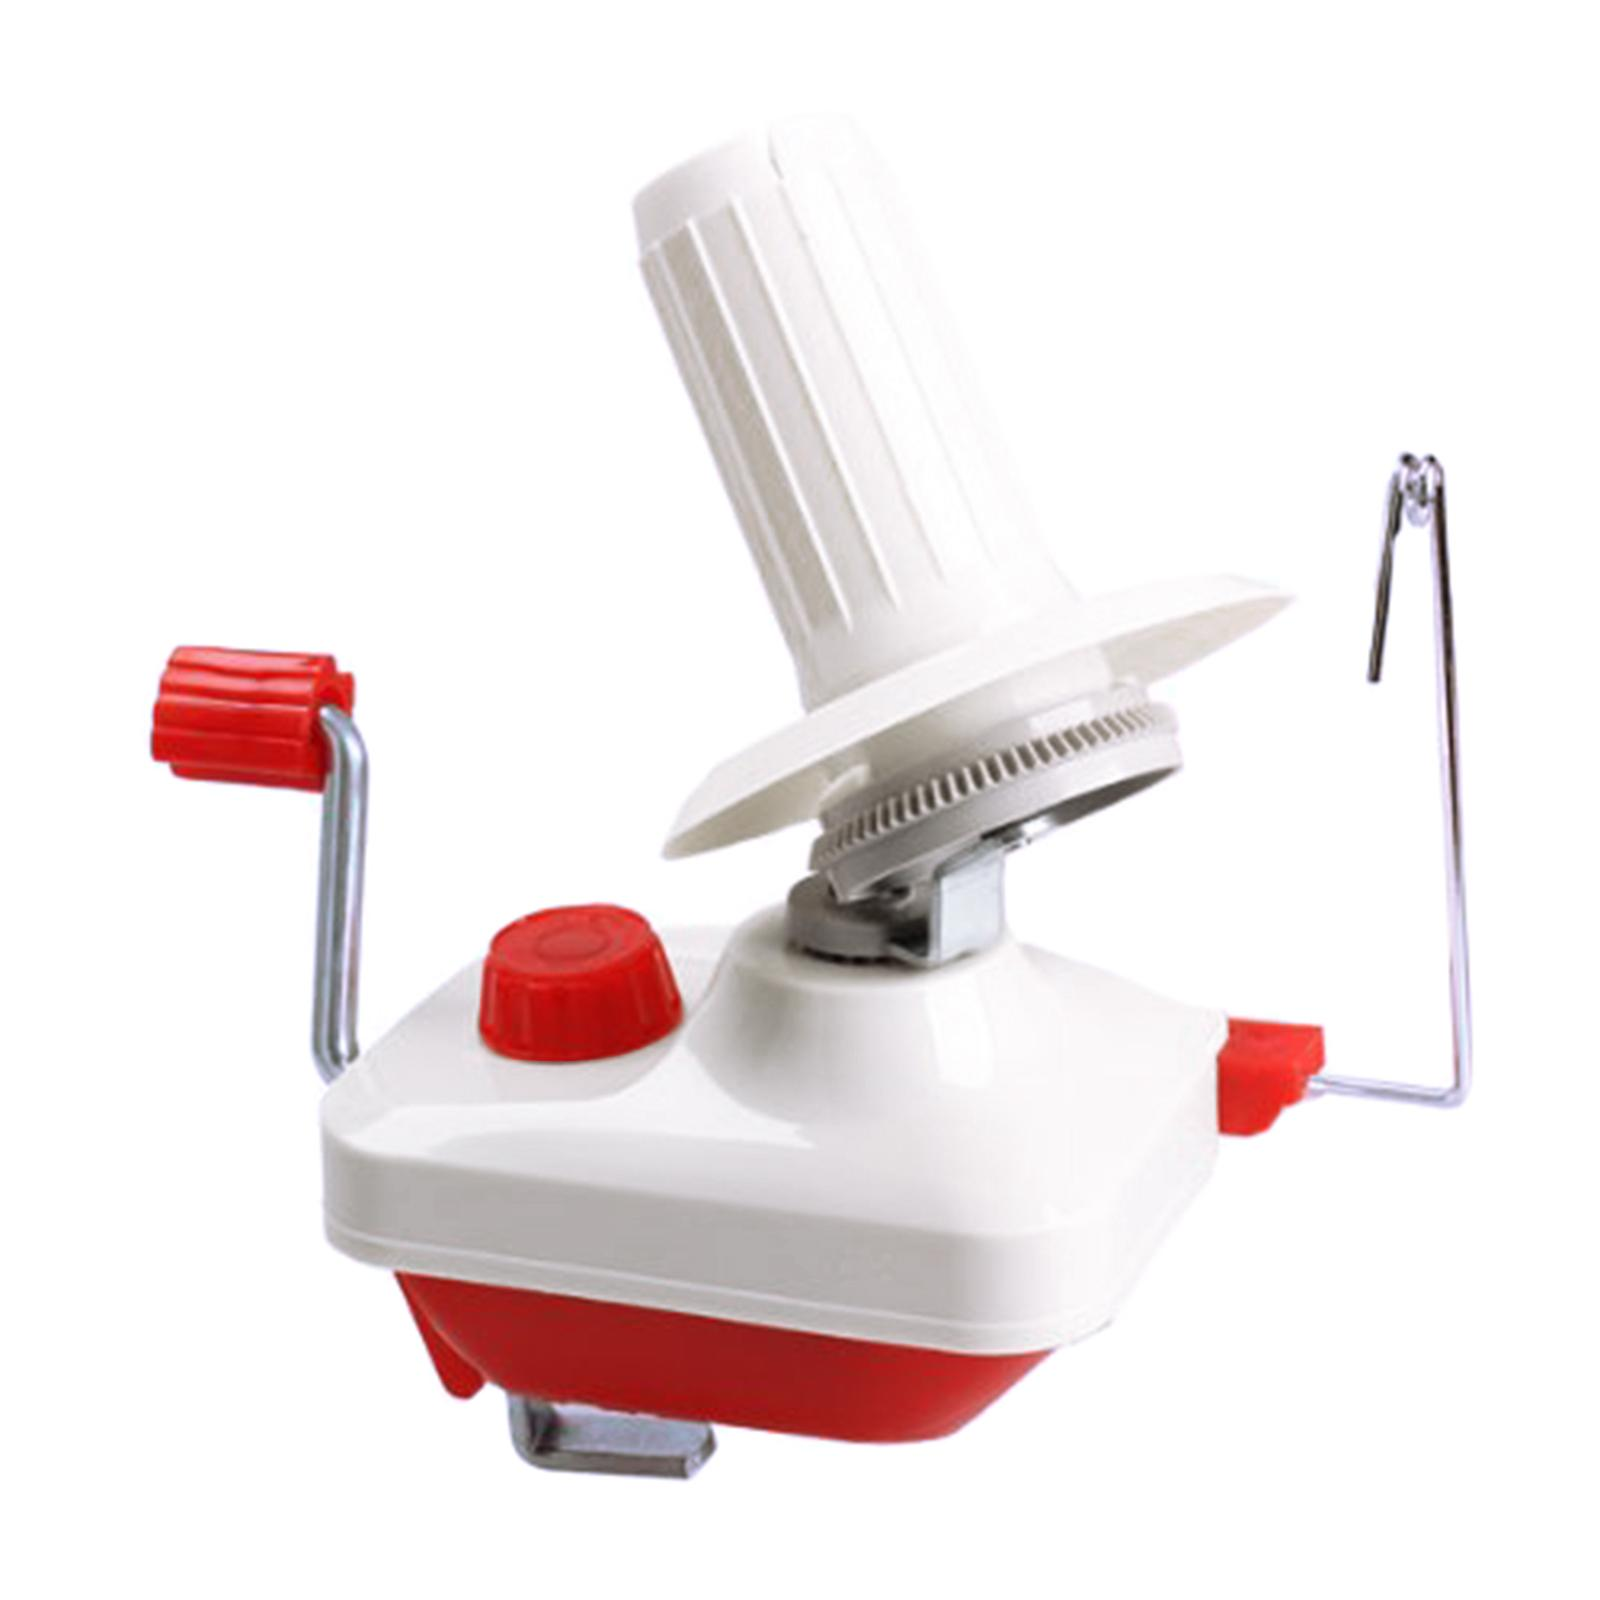 Swift Yarn Fiber String Ball Wool Winder Holder Household Hand Operated Cable Needle Wool Winding Machine In Box 2018 New